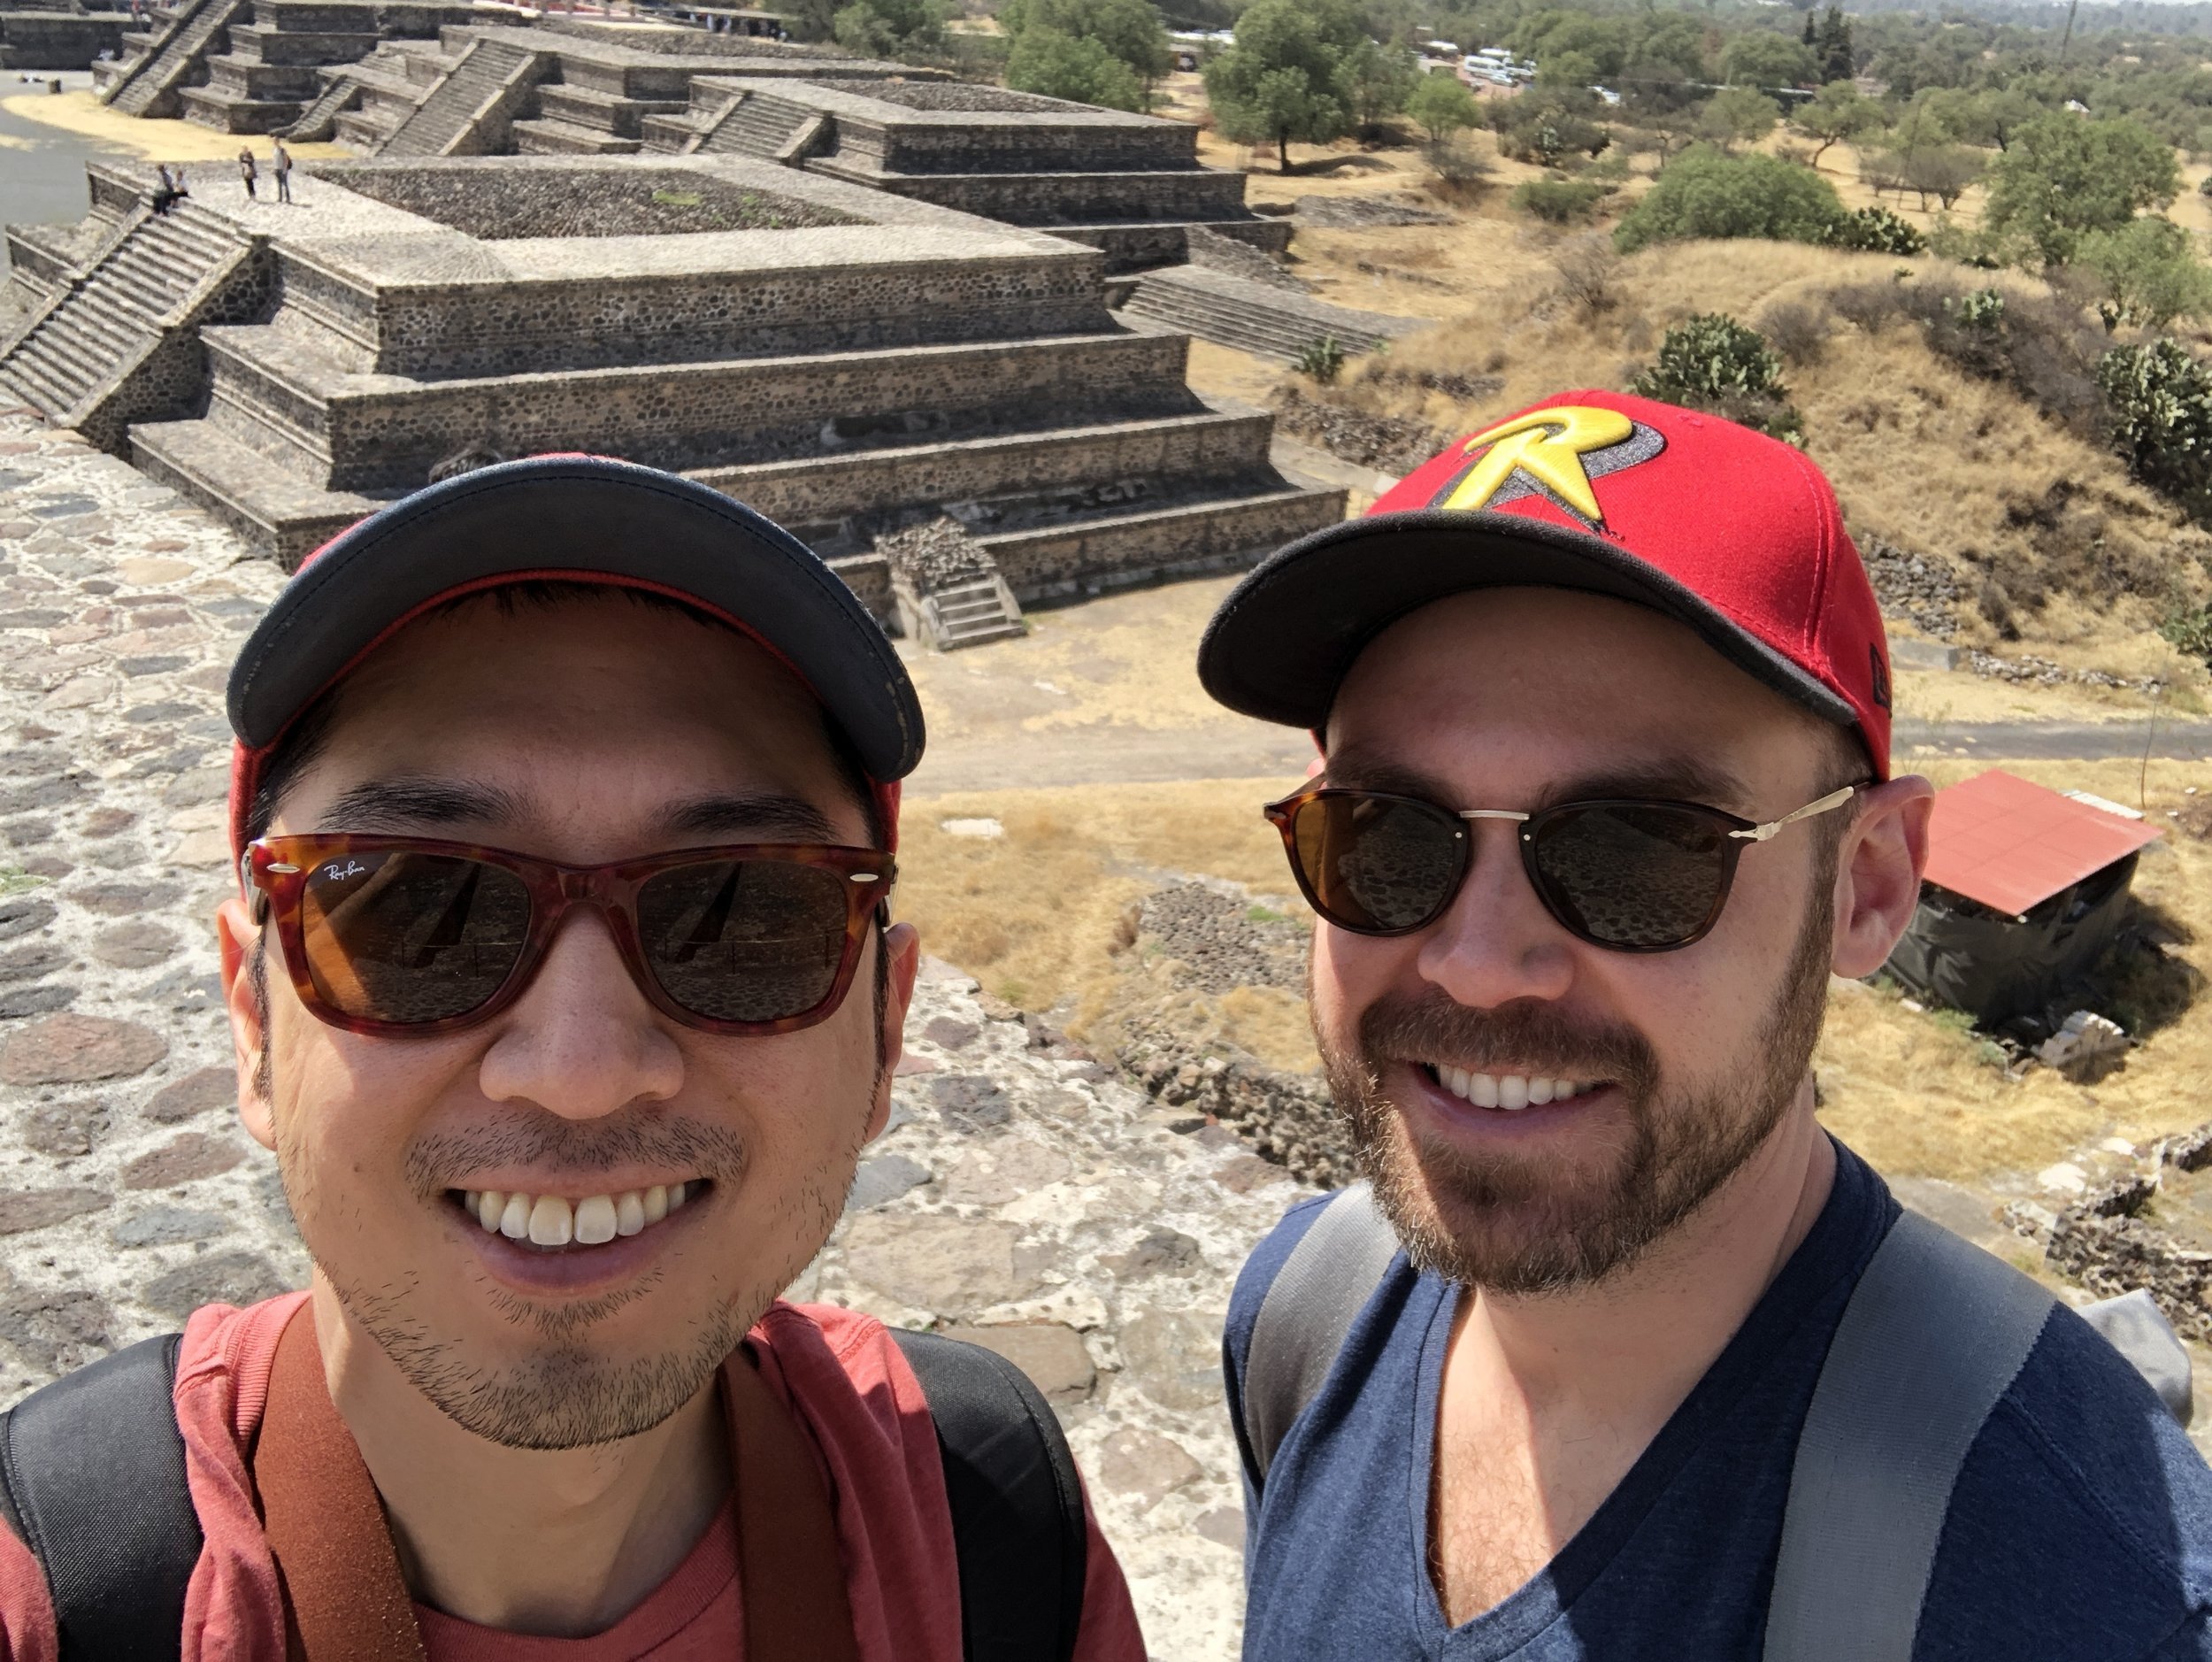 At the pyramids of Teotihuacan in Mexico